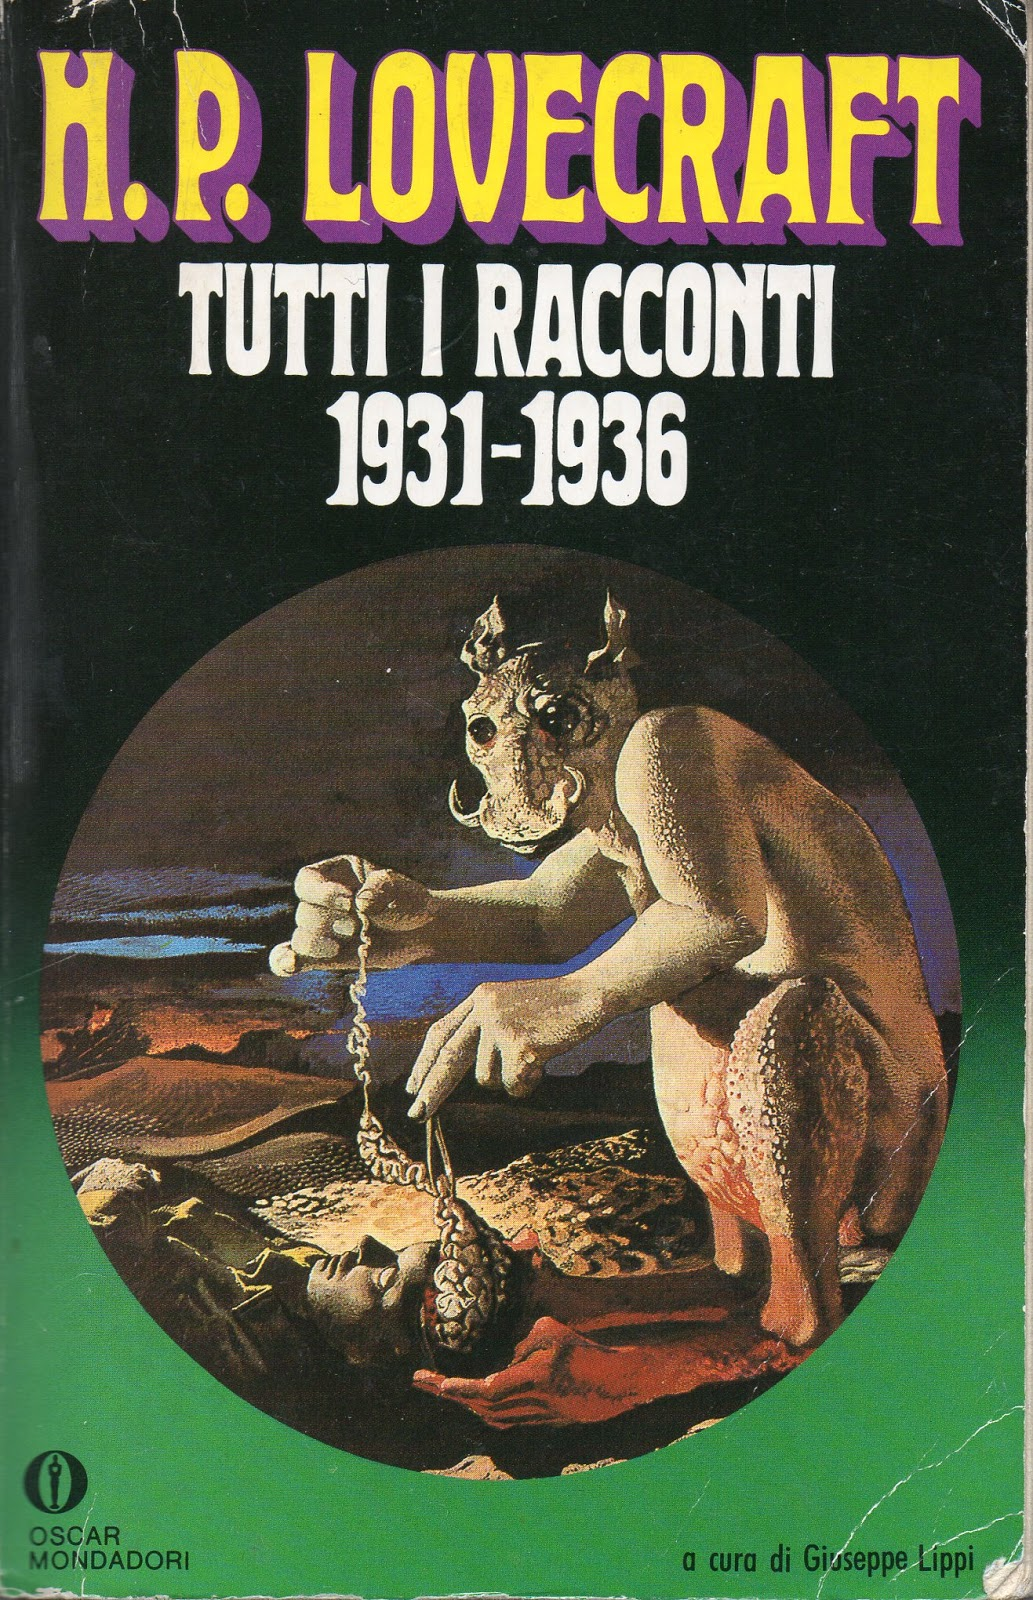 Karel Thole - Cover for Howard Phillips  Lovecraft - TUTTI I RACCONTI 1931-1936, published  1992